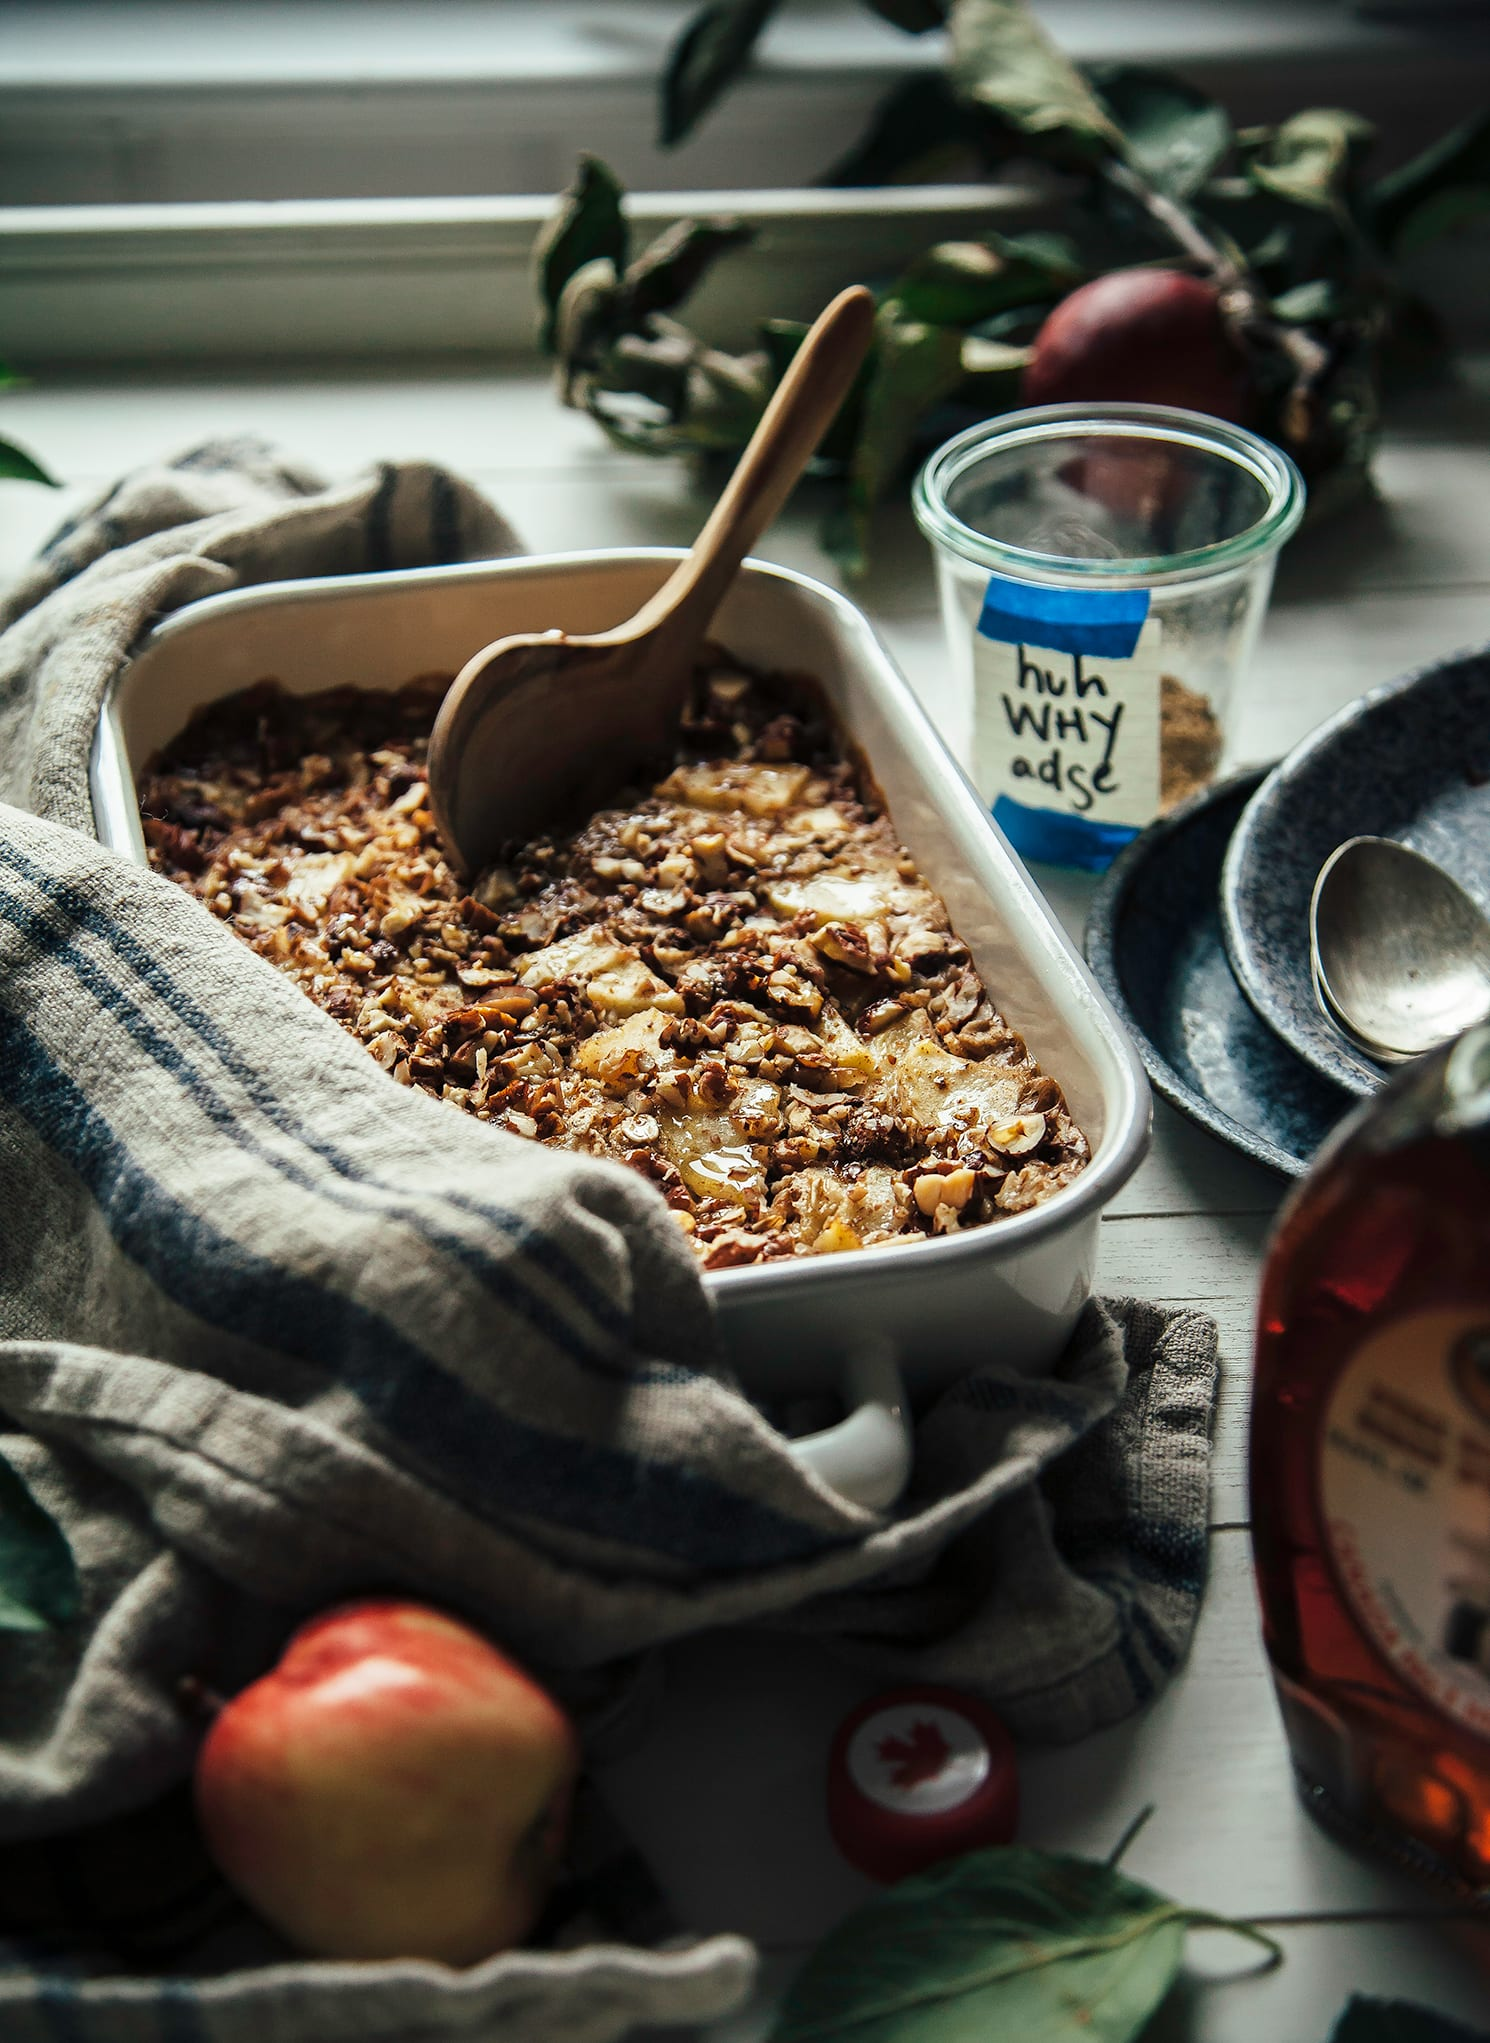 A 3/4 angle shot of a dish of baked oatmeal.